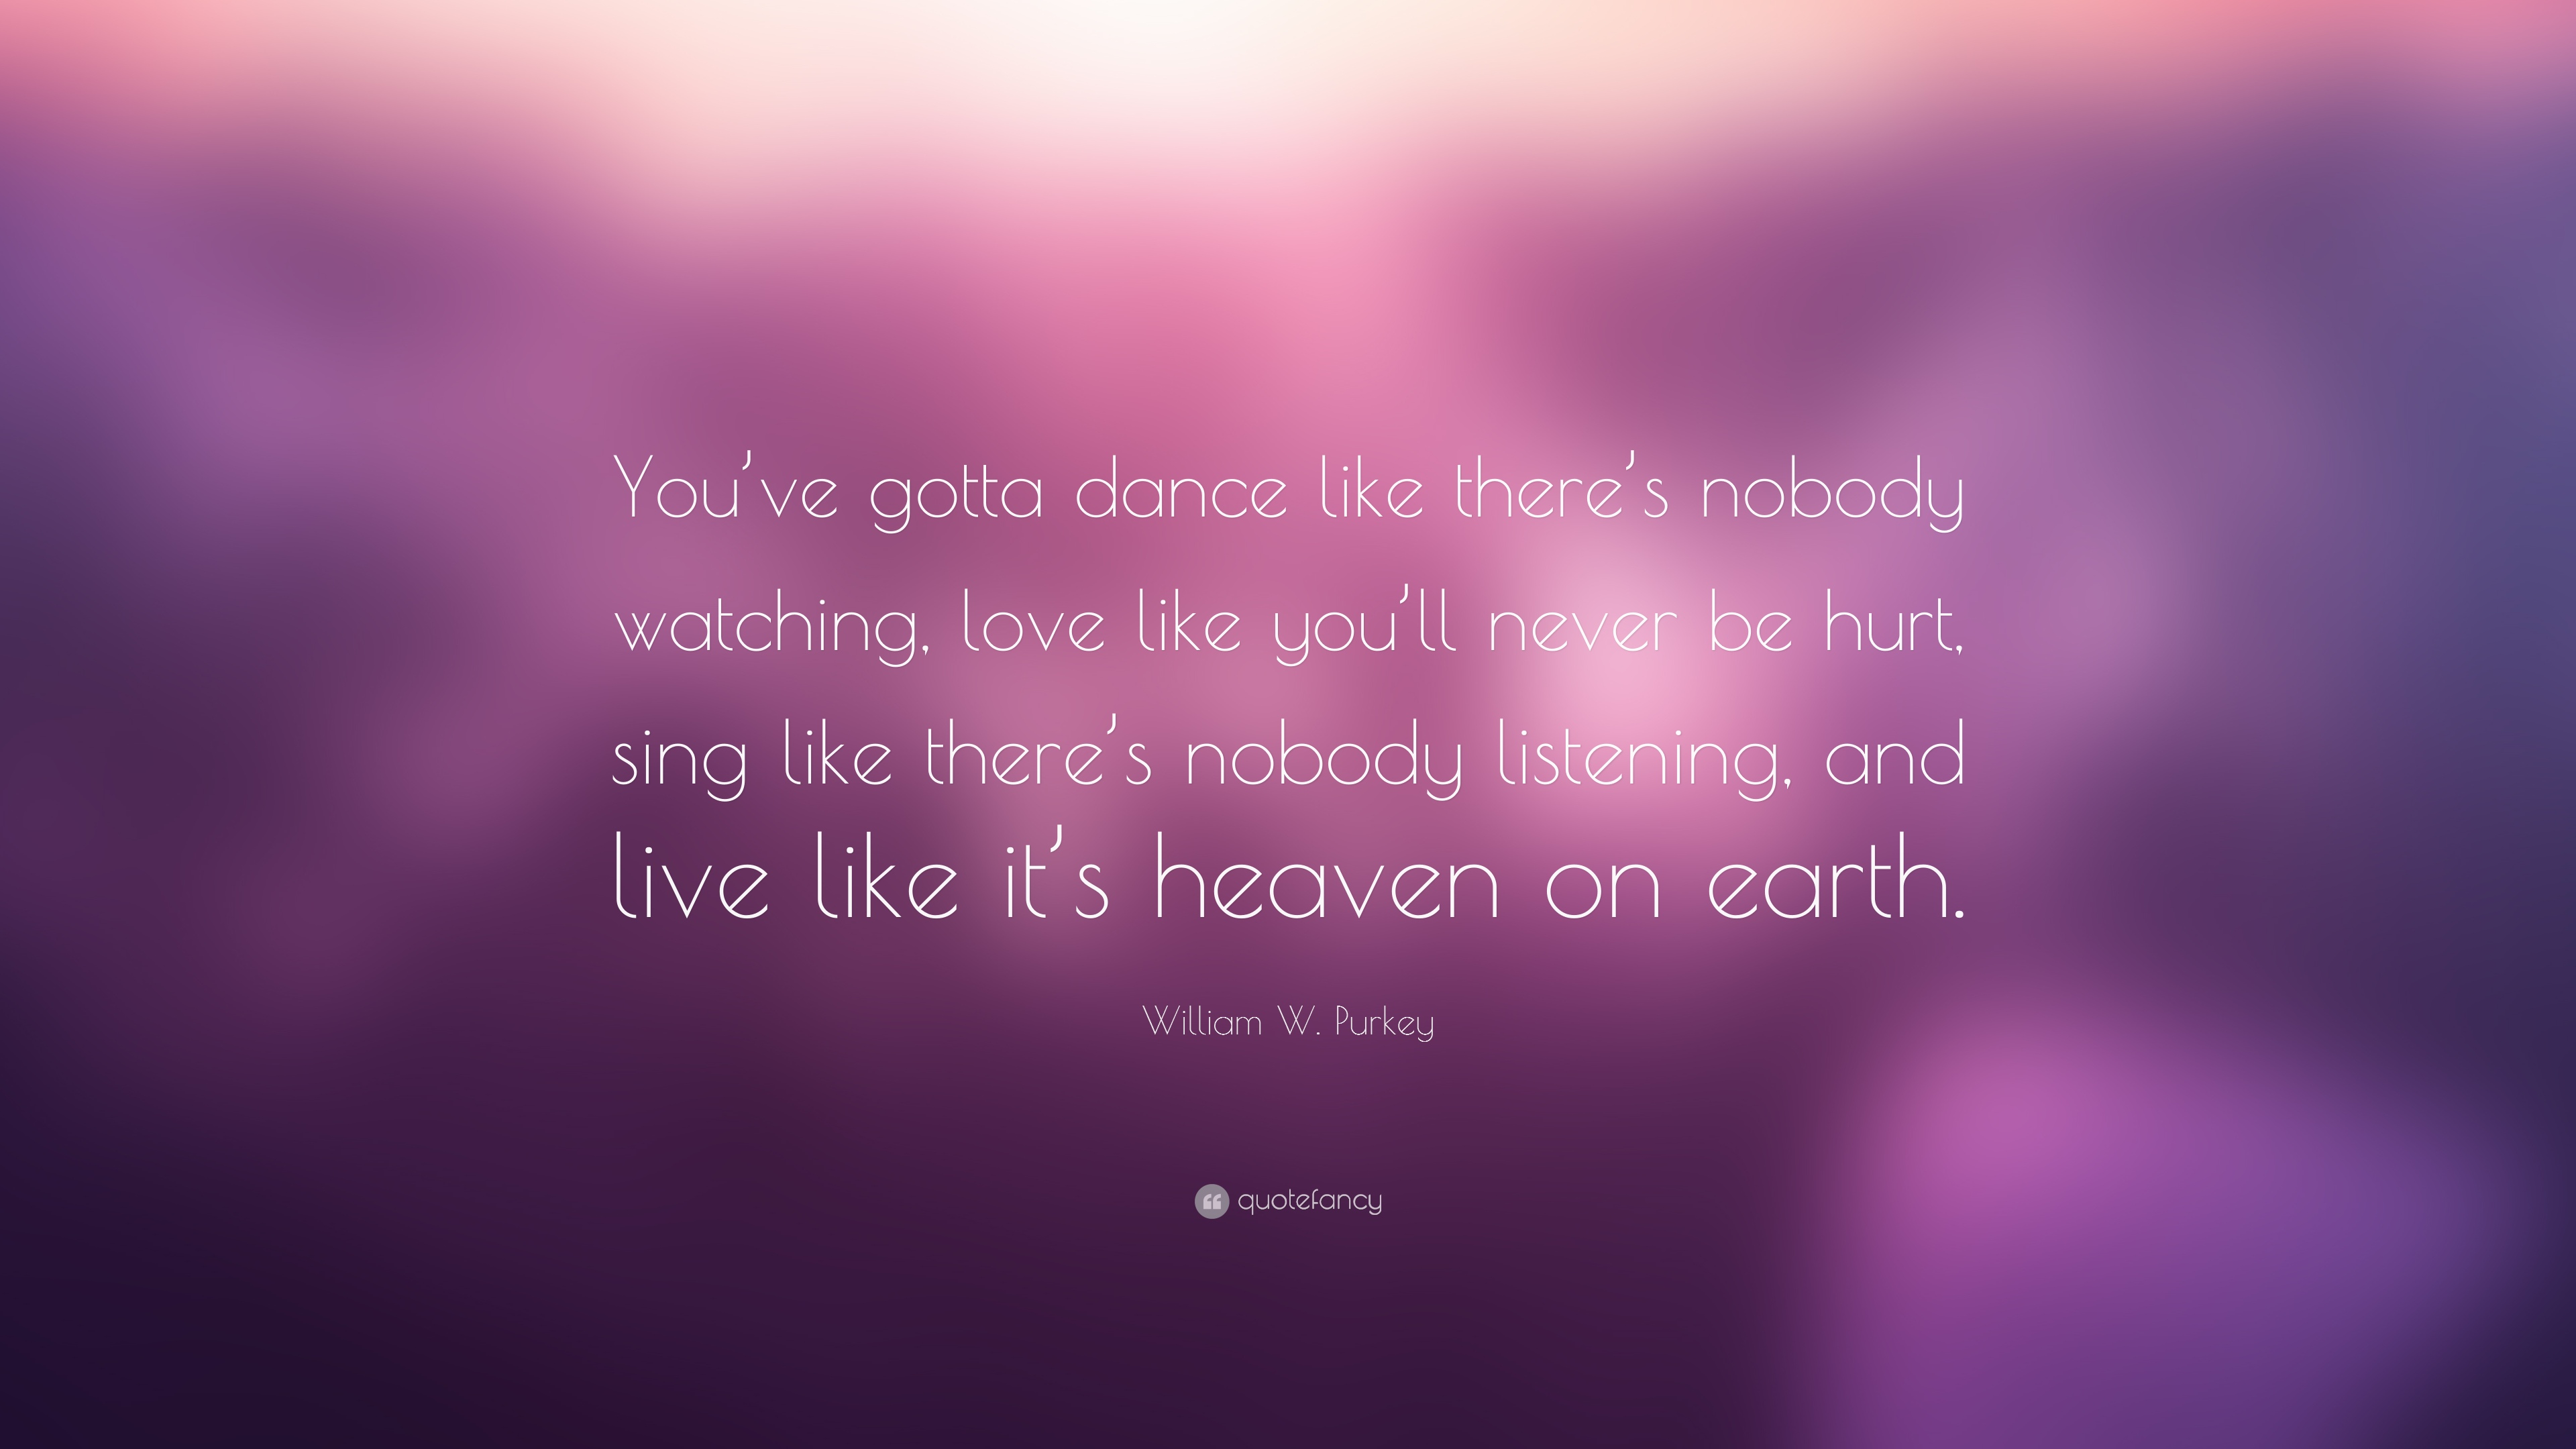 William W Purkey Quote You Ve Gotta Dance Like There S Nobody Watching Love Like You Ll Never Be Hurt Sing Like There S Nobody Listening And 18 Wallpapers Quotefancy